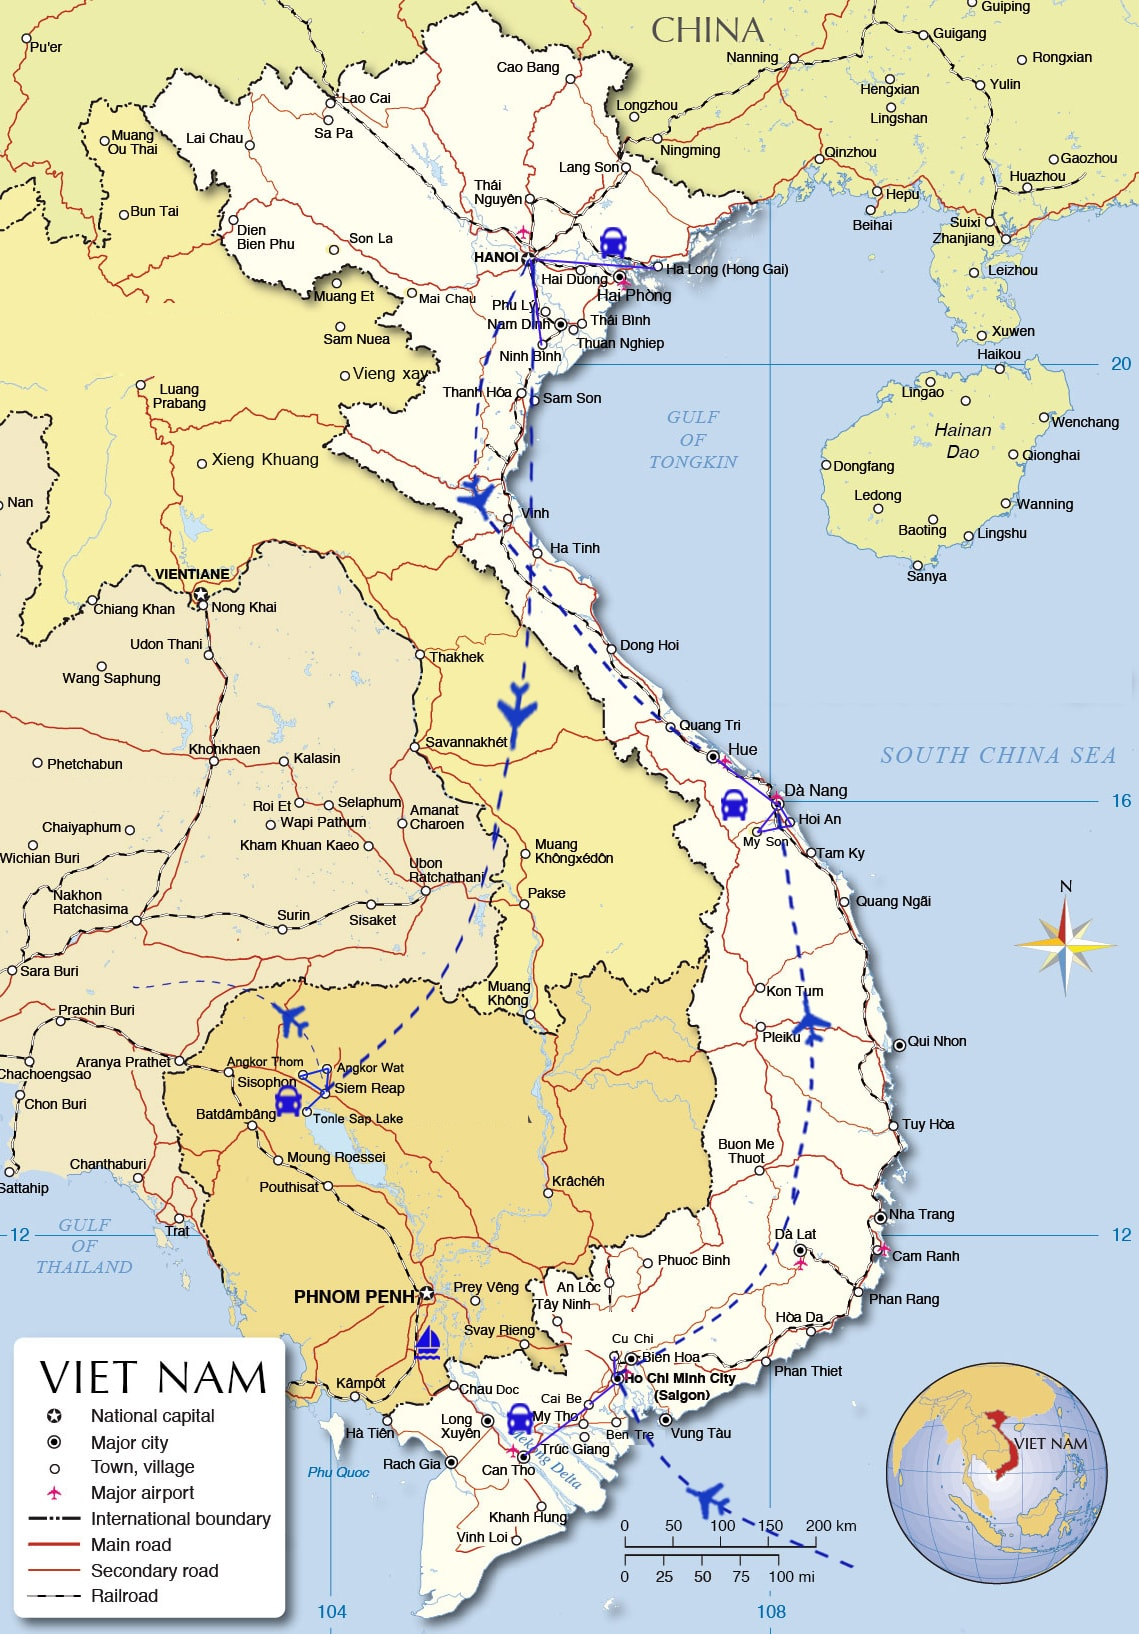 ILT03: Vietnam & Cambodia Holiday - 15 days from Ho Chi Minh City map